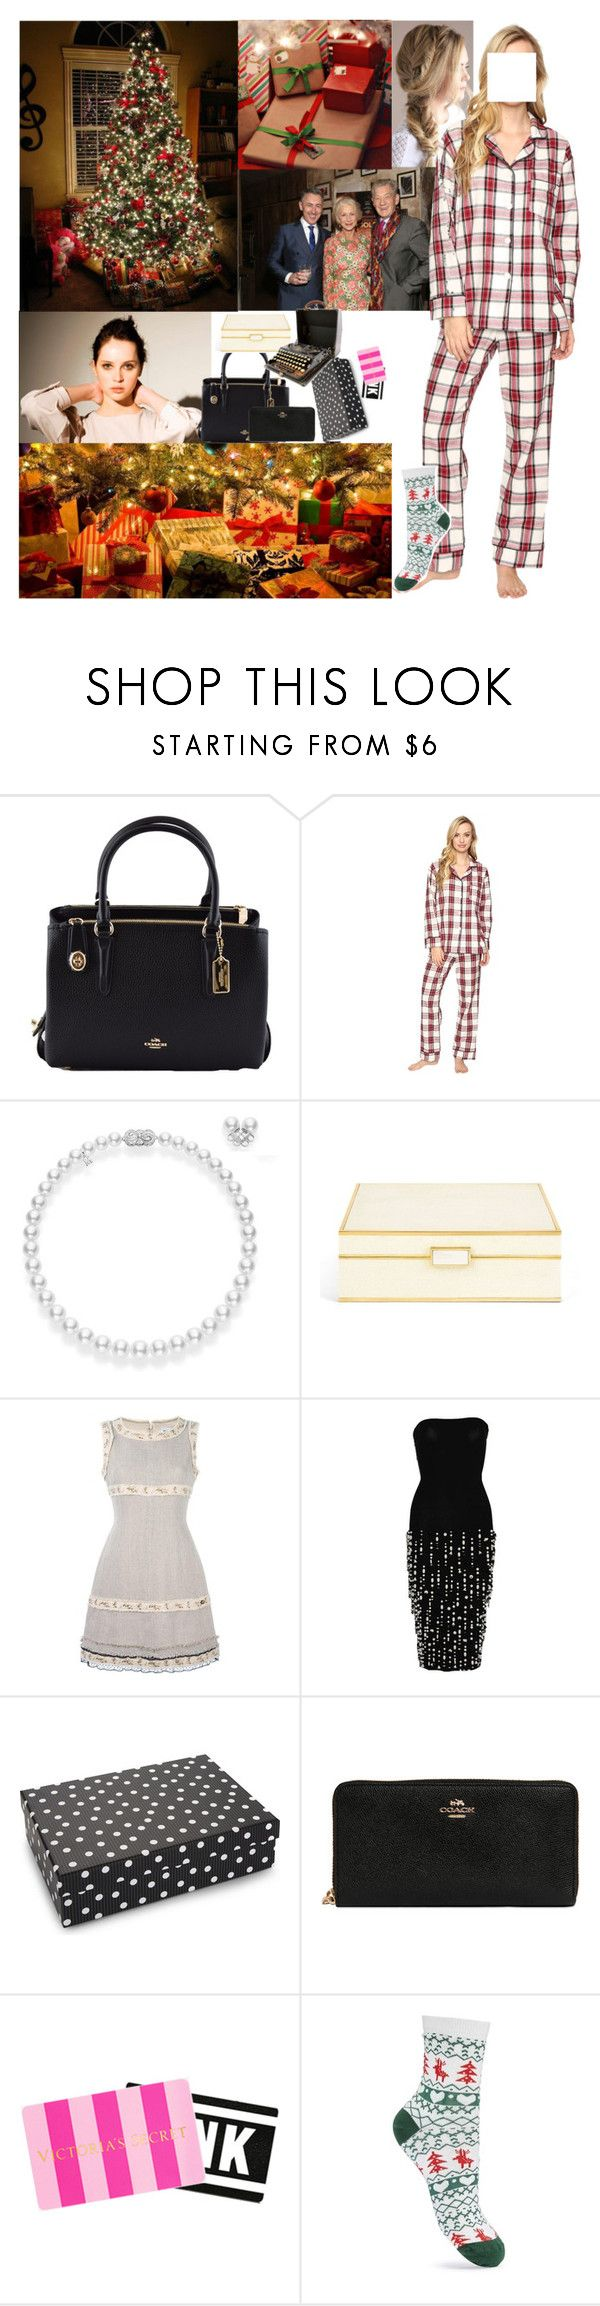 """Waking Up Christmas Morning + Exchanging Gifts with Her Family"" by elizabethwindsor ❤ liked on Polyvore featuring Coach, Bed Head by TIGI, Mikimoto, AERIN, Chanel, Dolce&Gabbana, Remington, Victoria's Secret, Miss Selfridge and vintage"